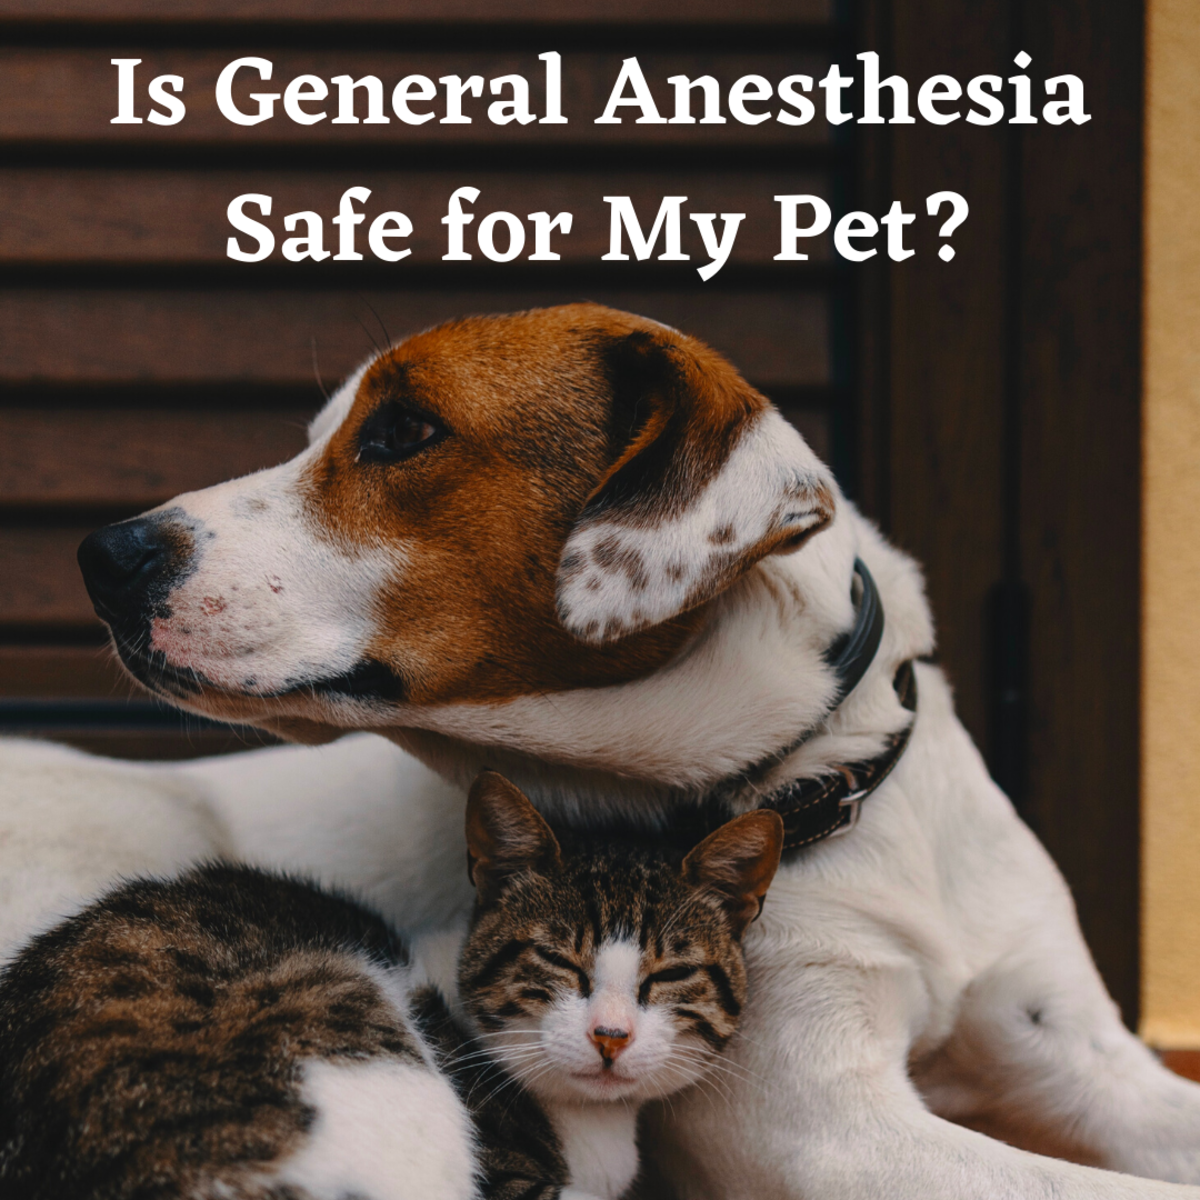 Learn some of the risk factors for animals going under general anesthesia.